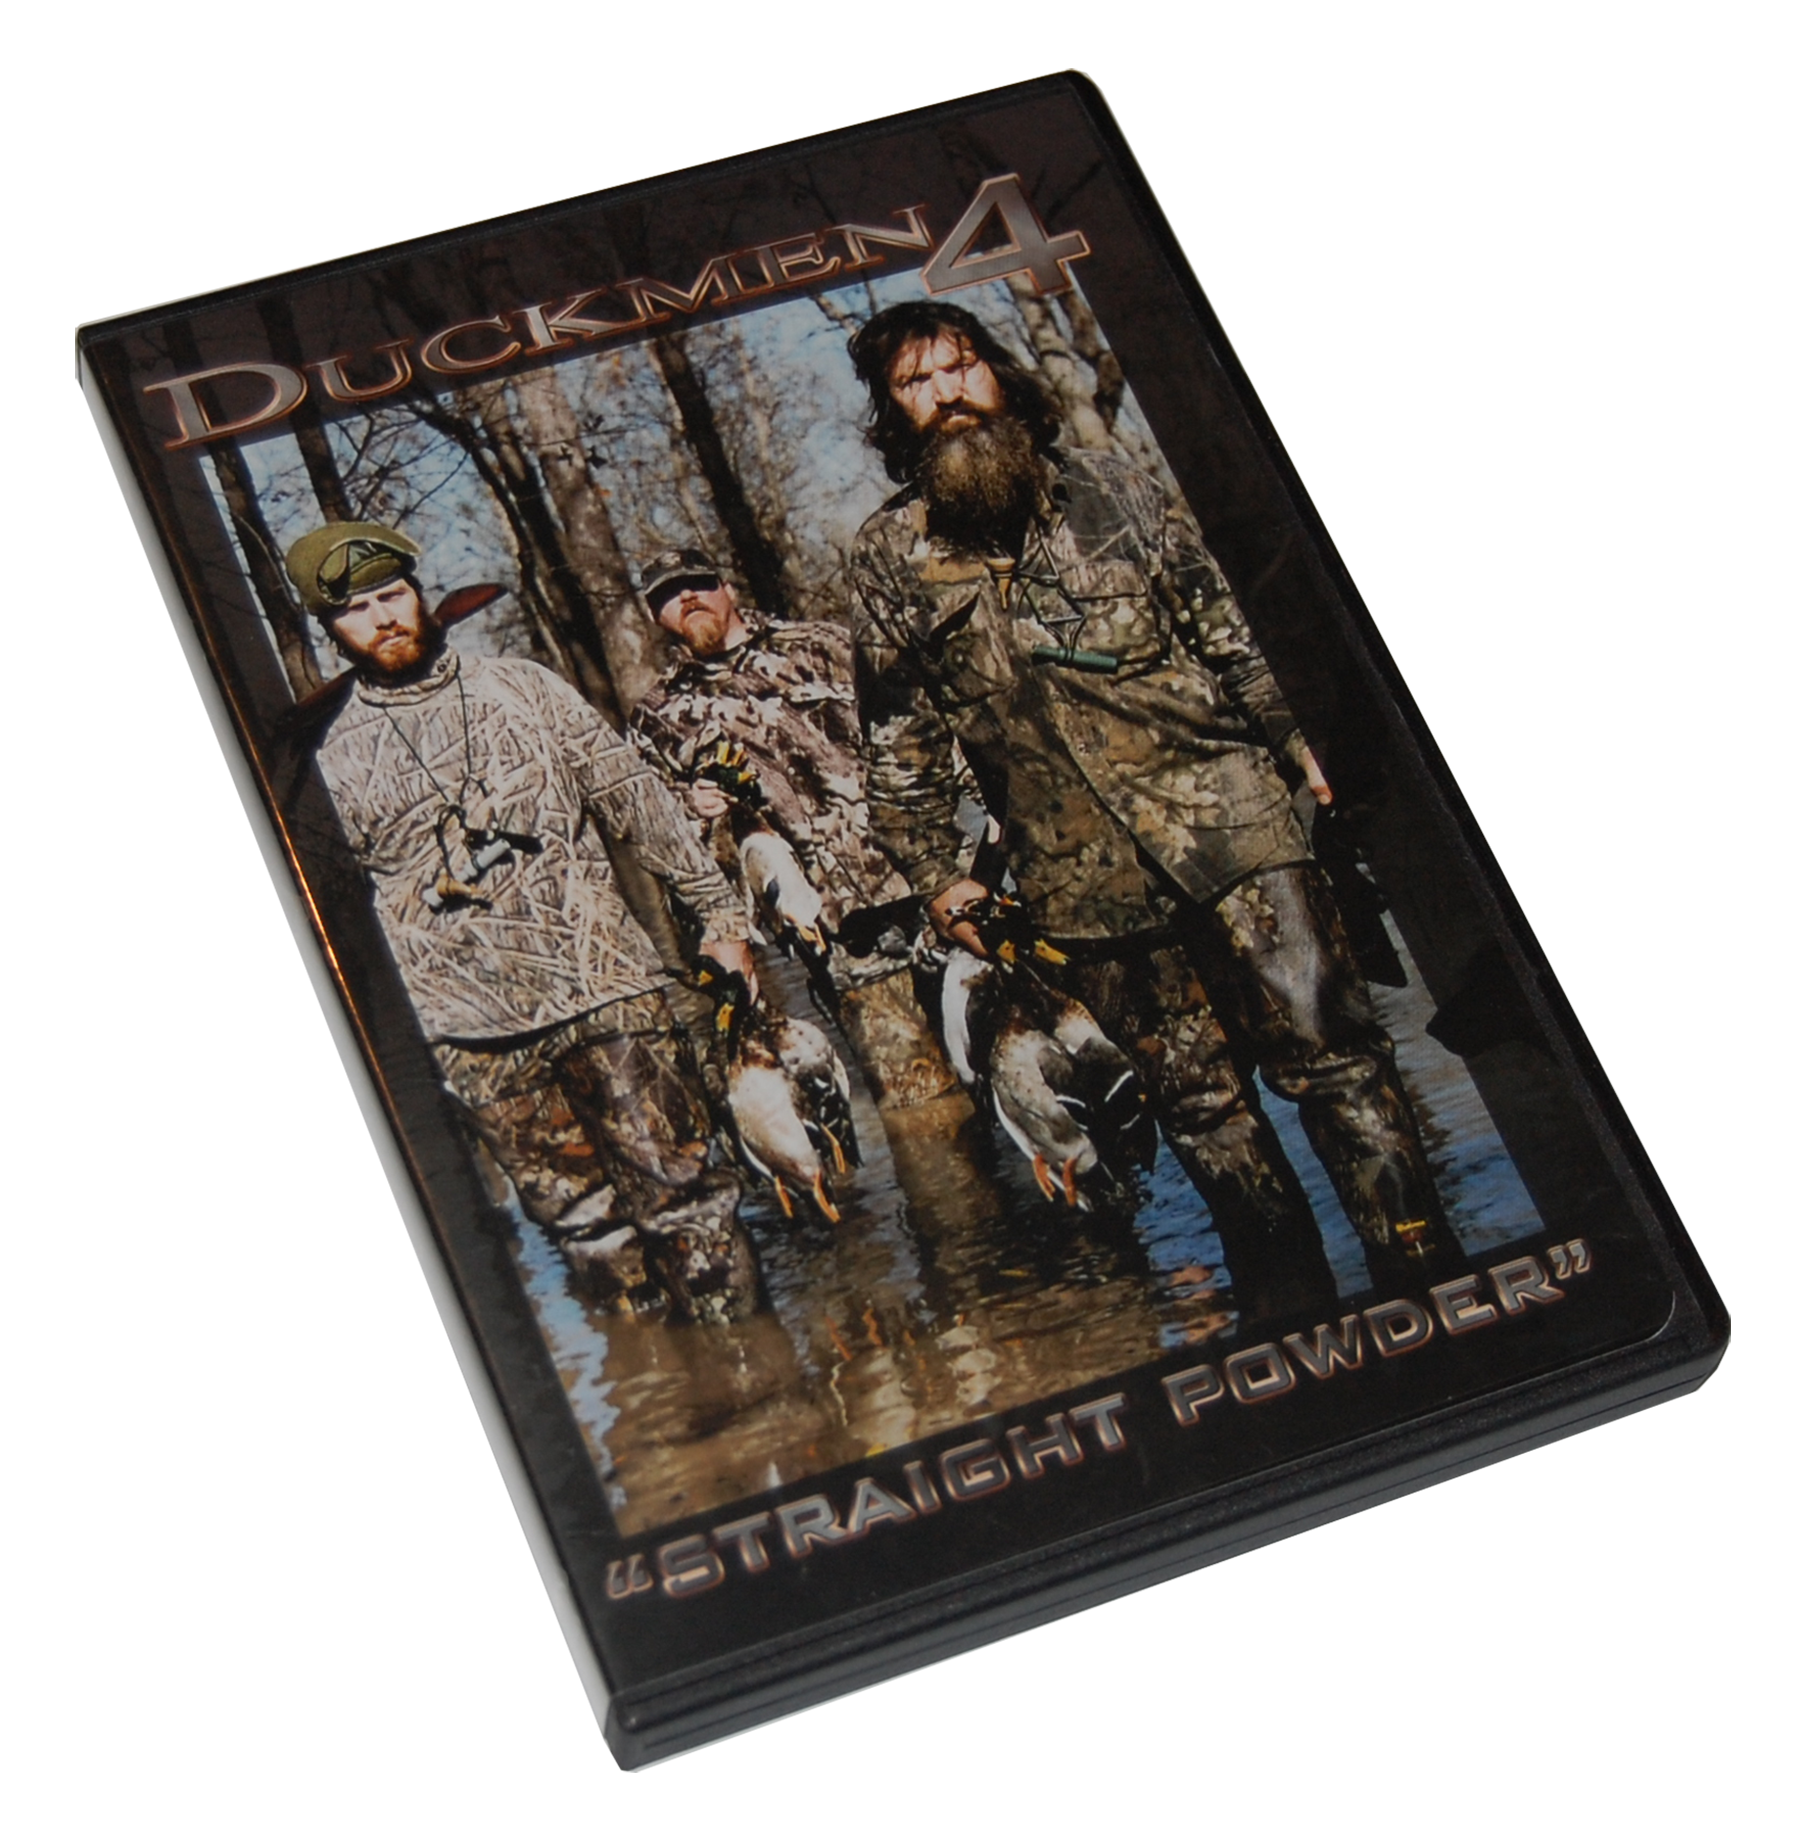 Duck Commander DD4 Duckmen 4 - Straight Powder DVD 112 Minutes 1997